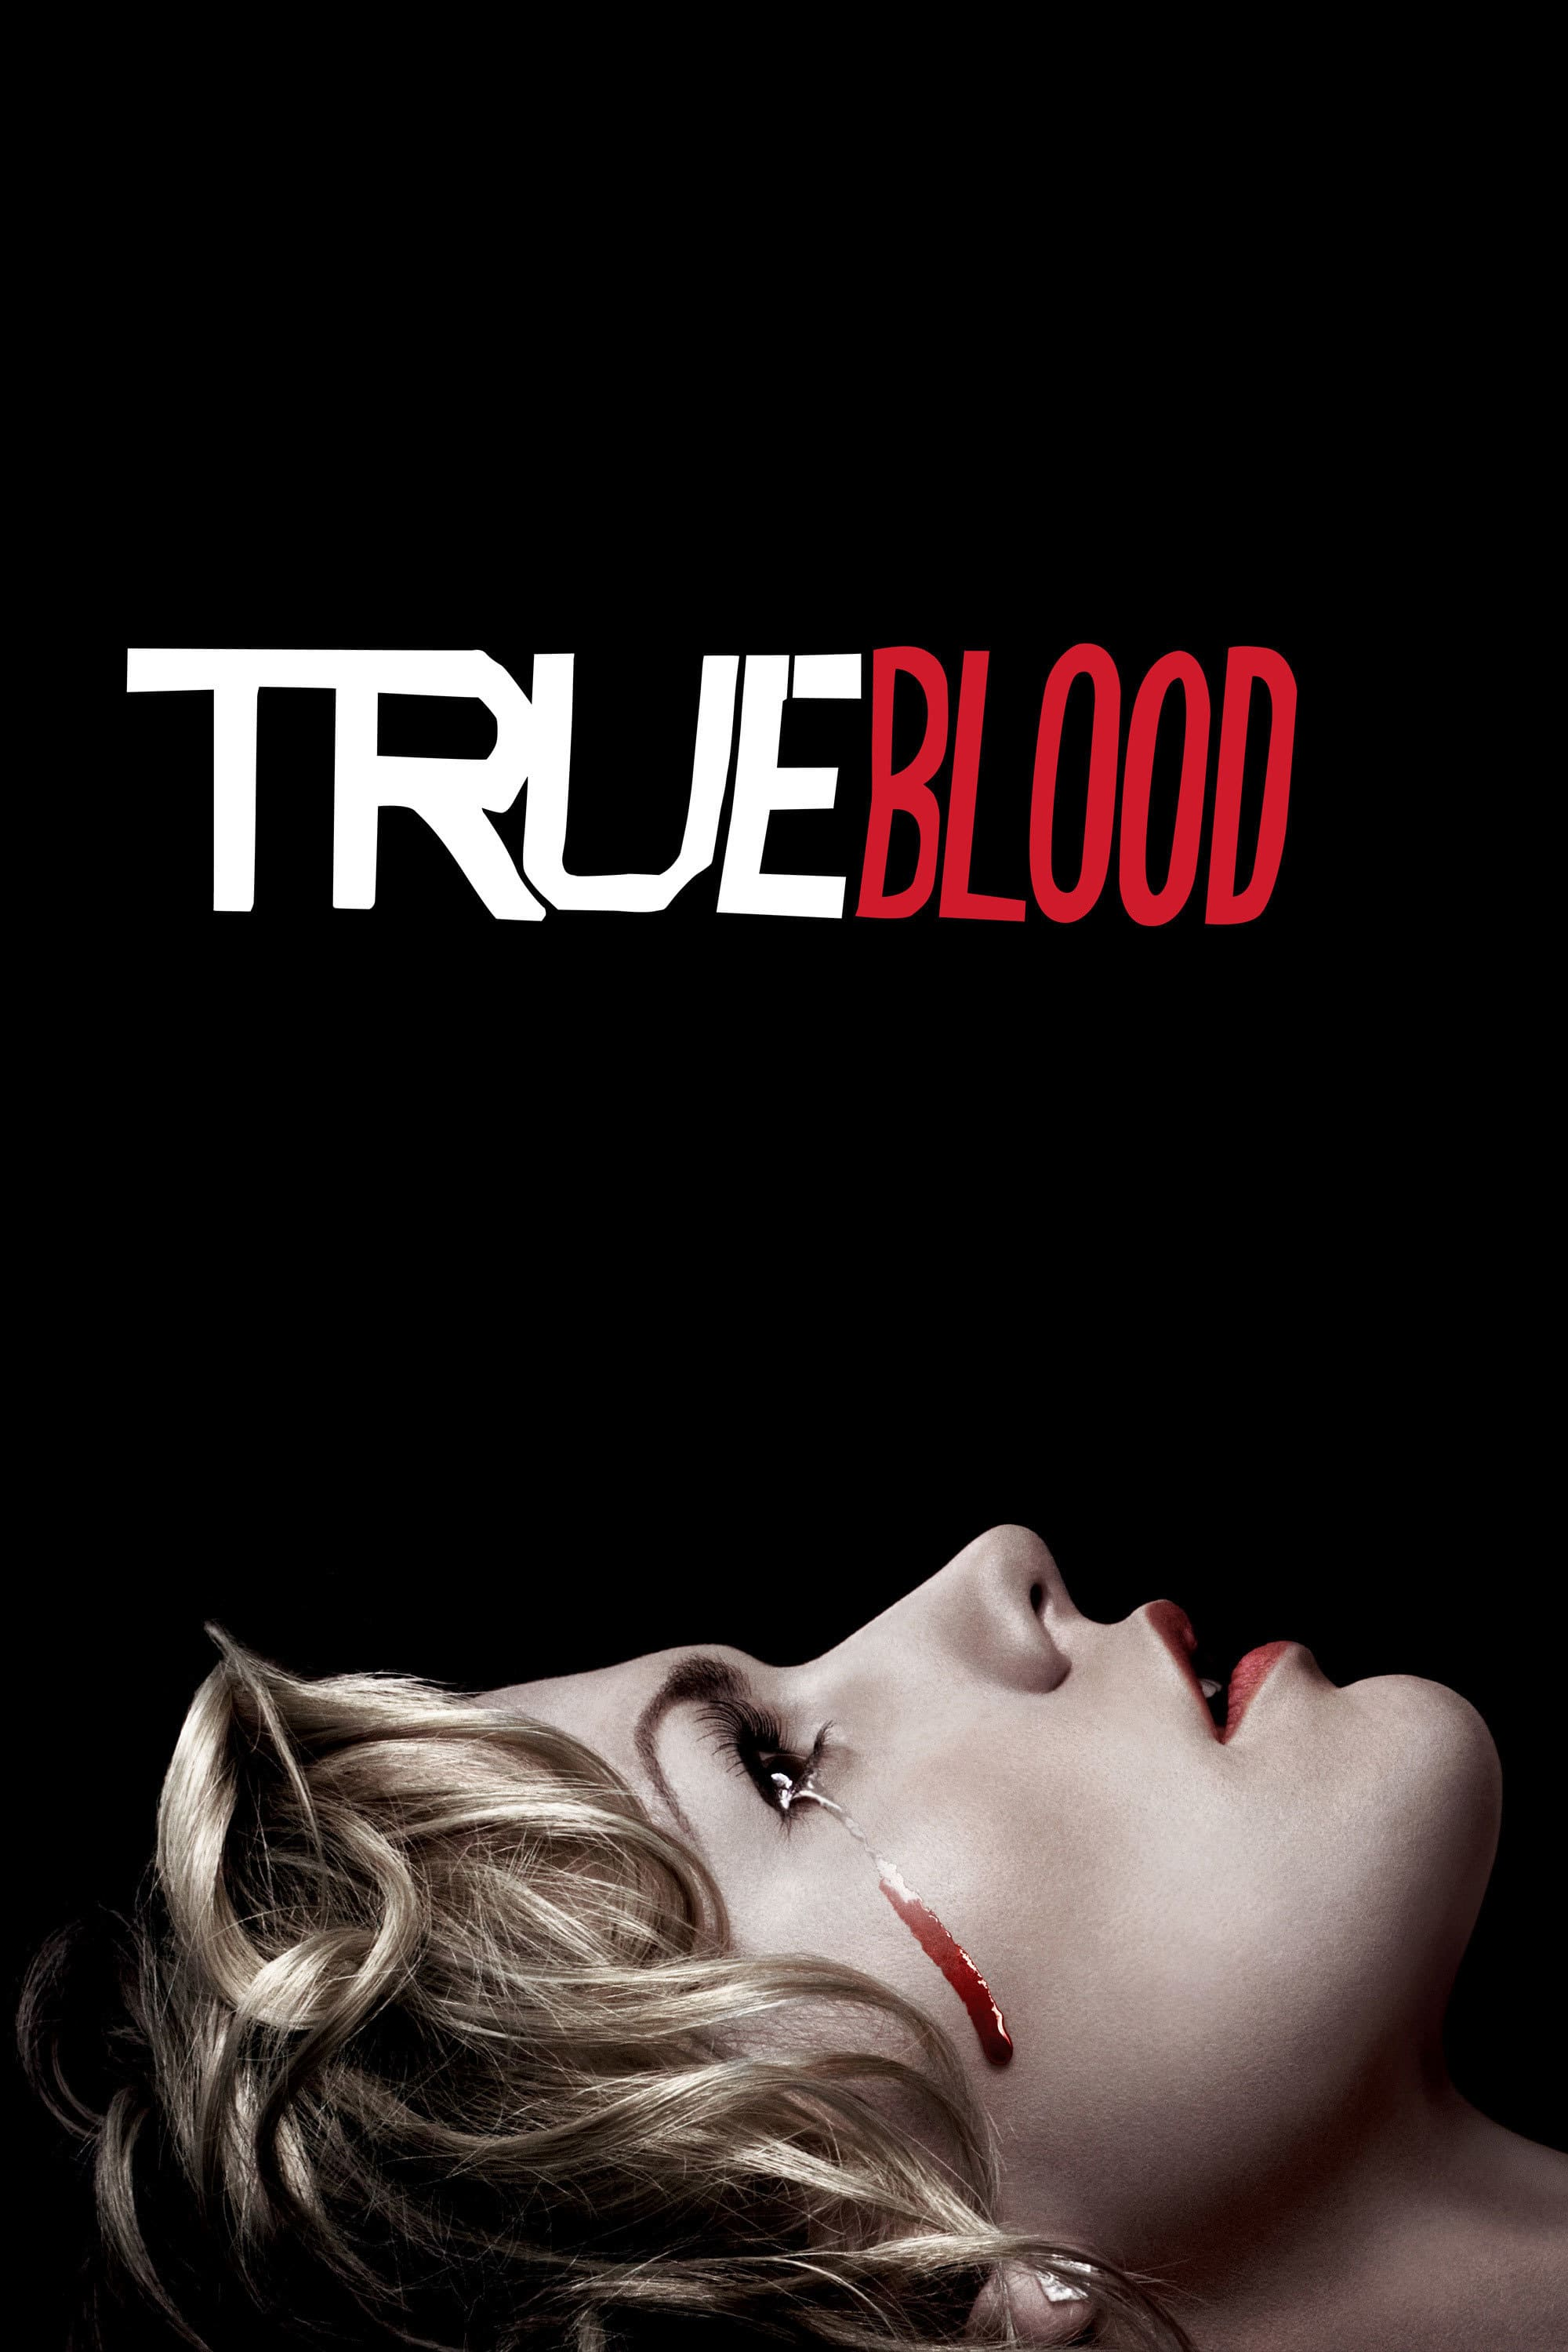 True Blood, 2008